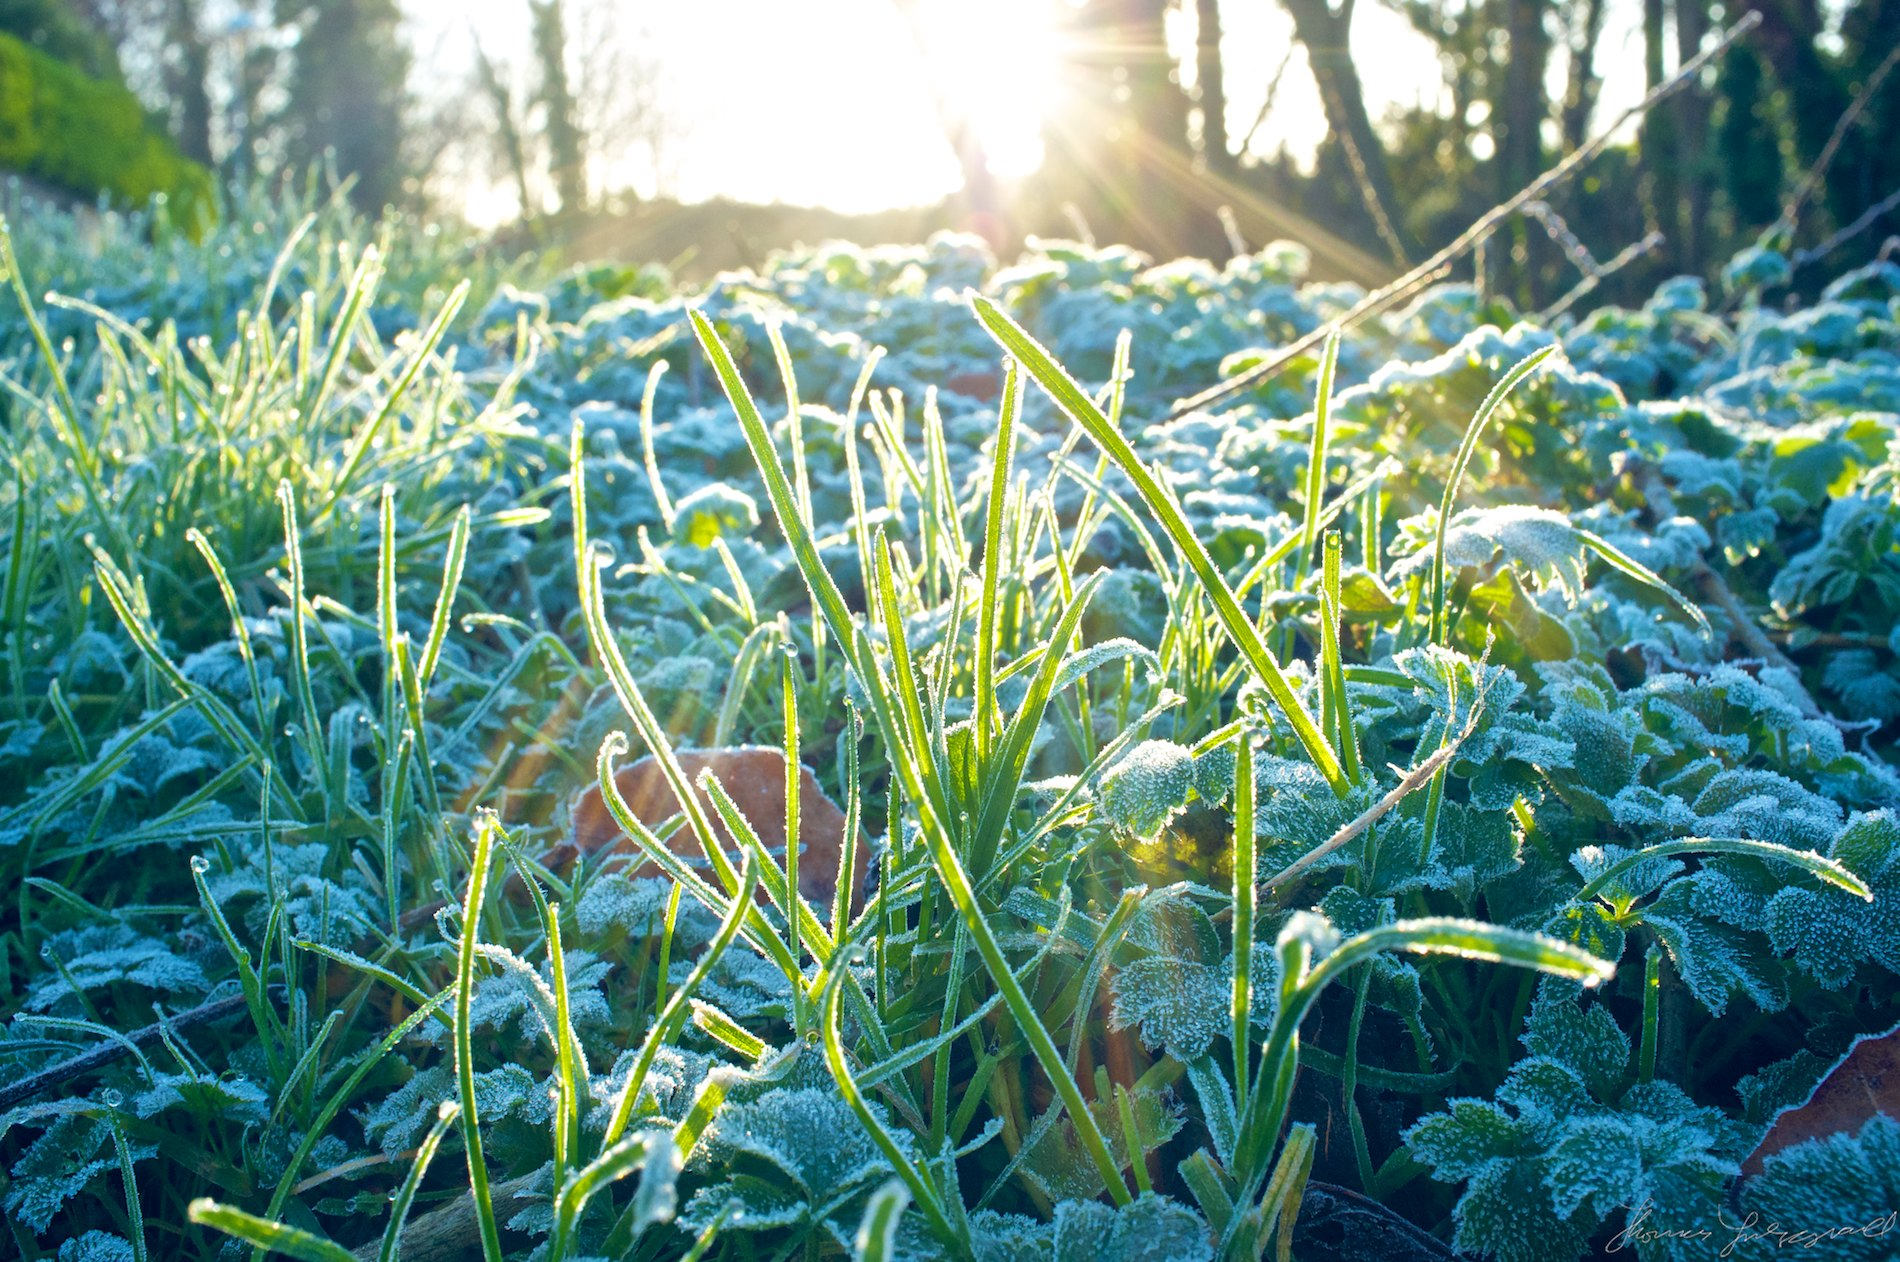 Fresh Frost in the Sunhine